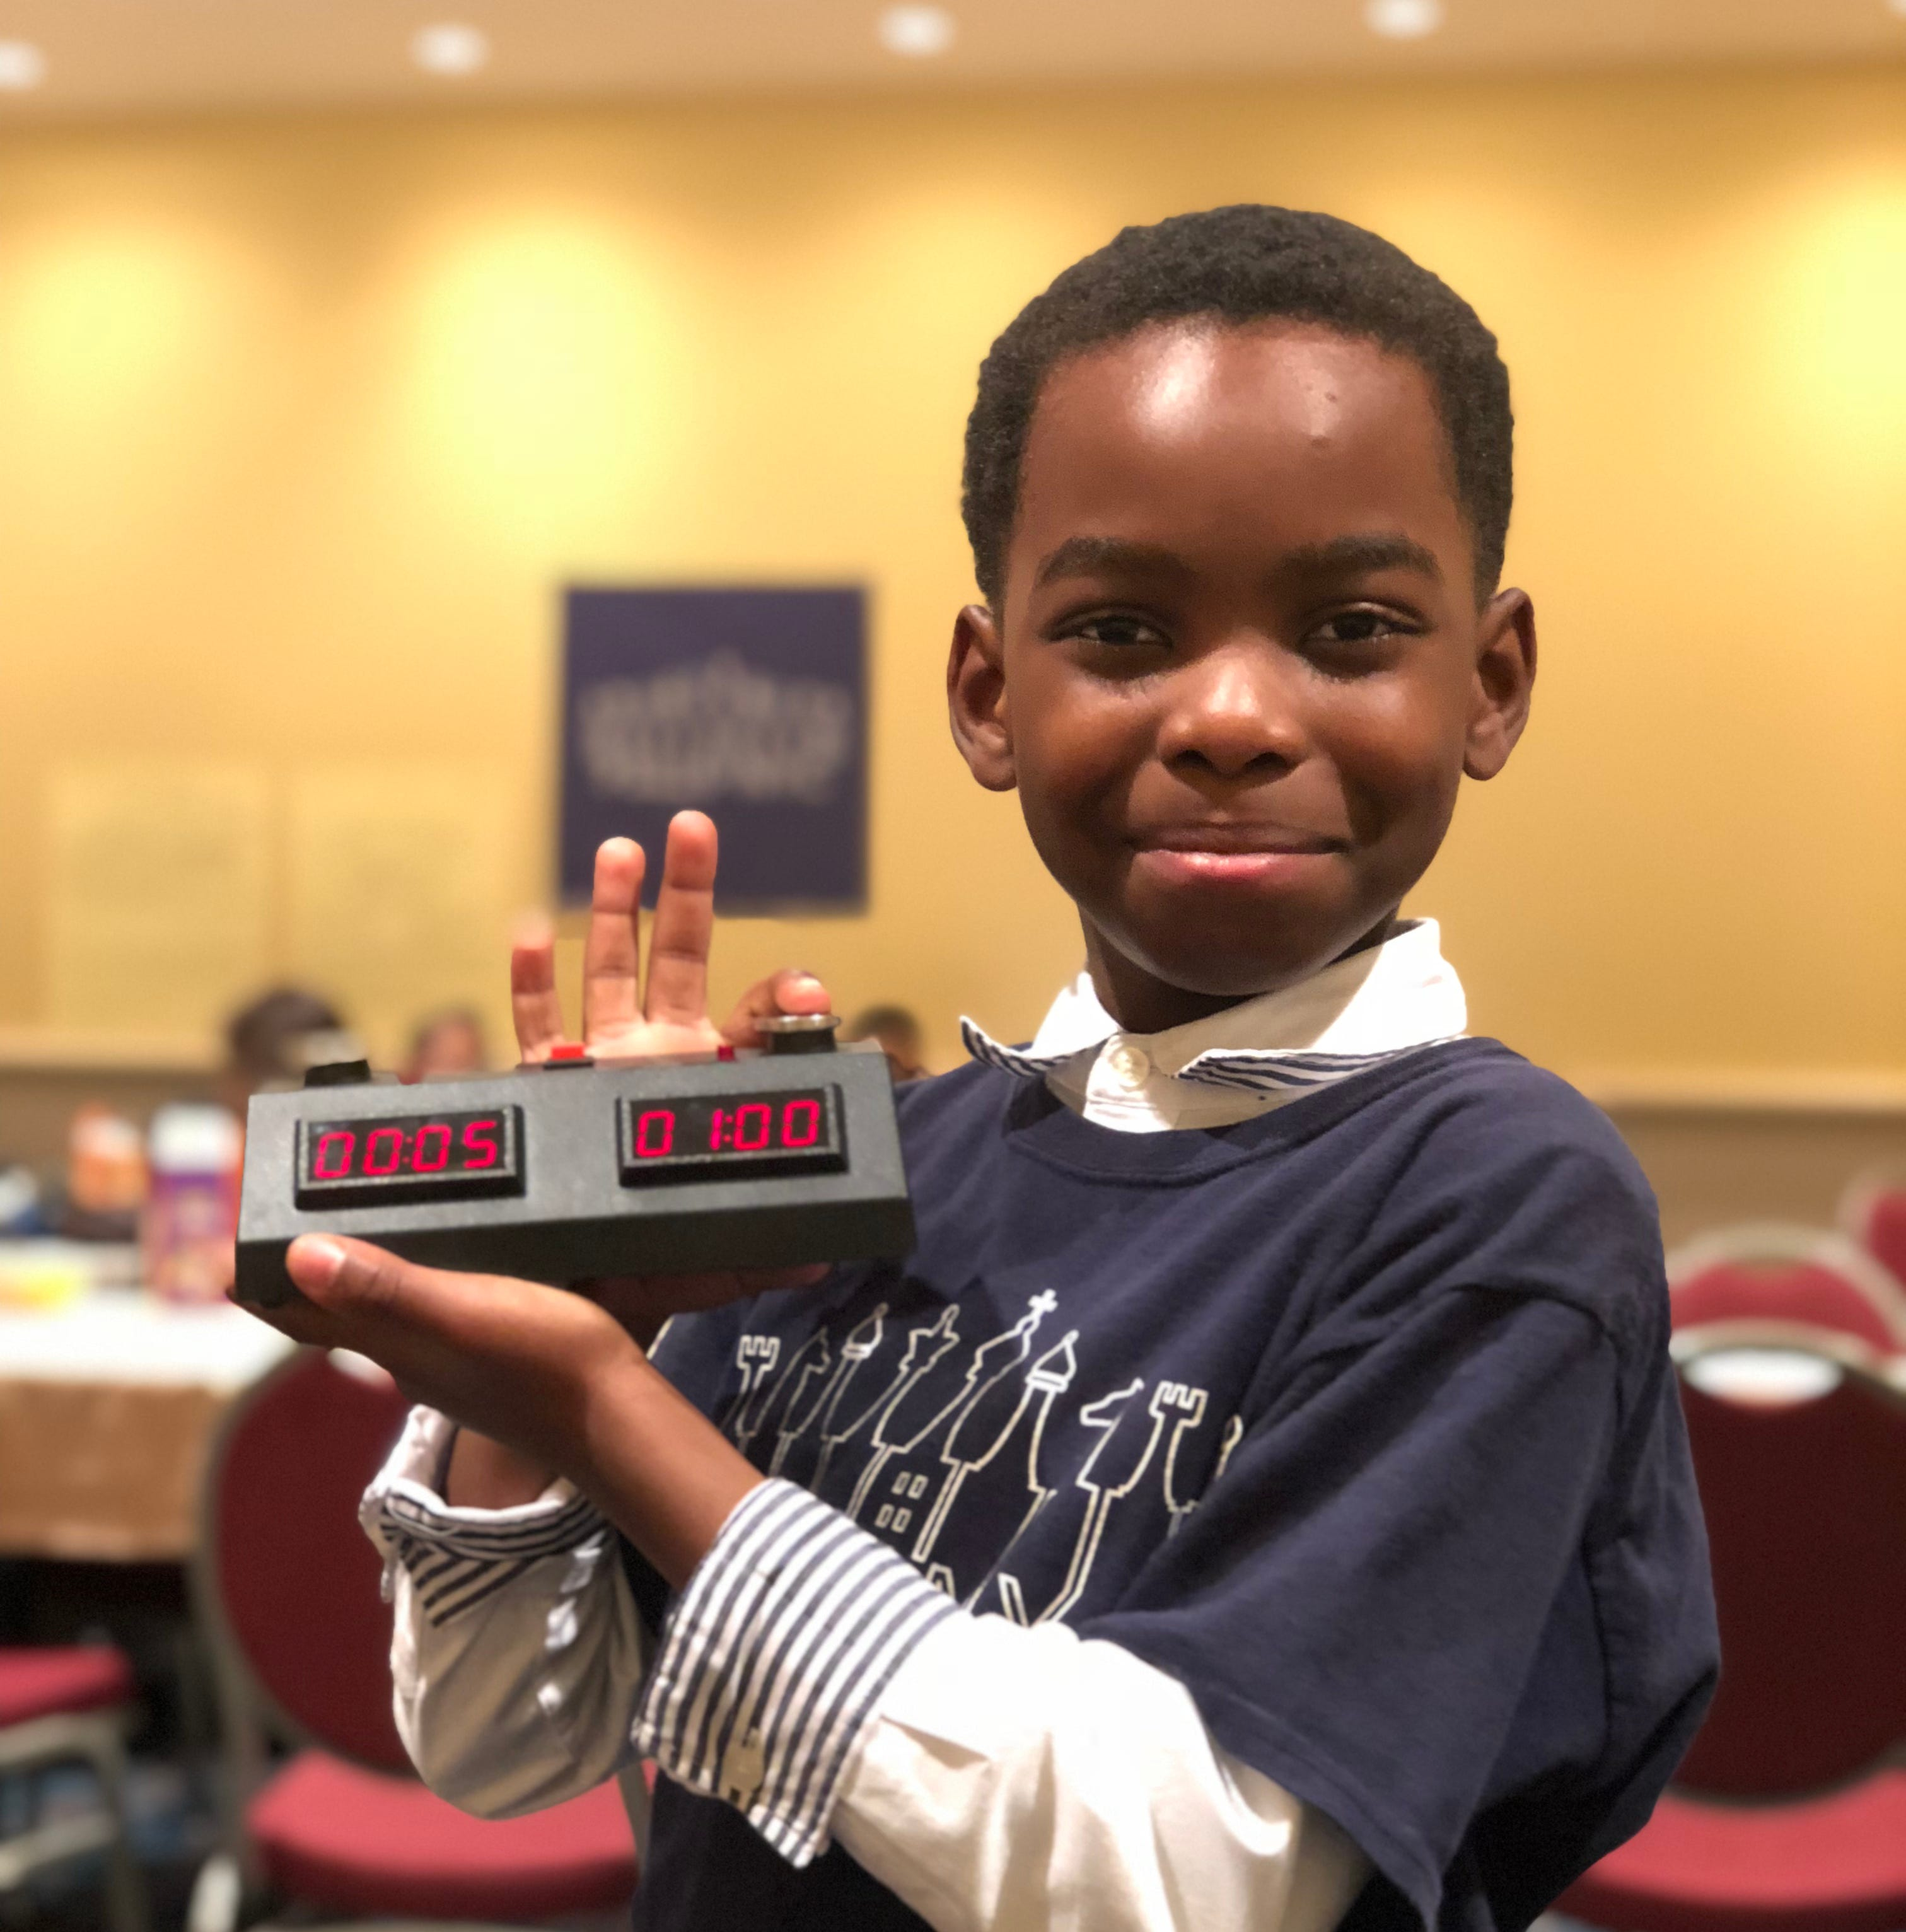 8-year-old living in homeless shelter wins New York chess championship: 'I want to be the youngest grandmaster'